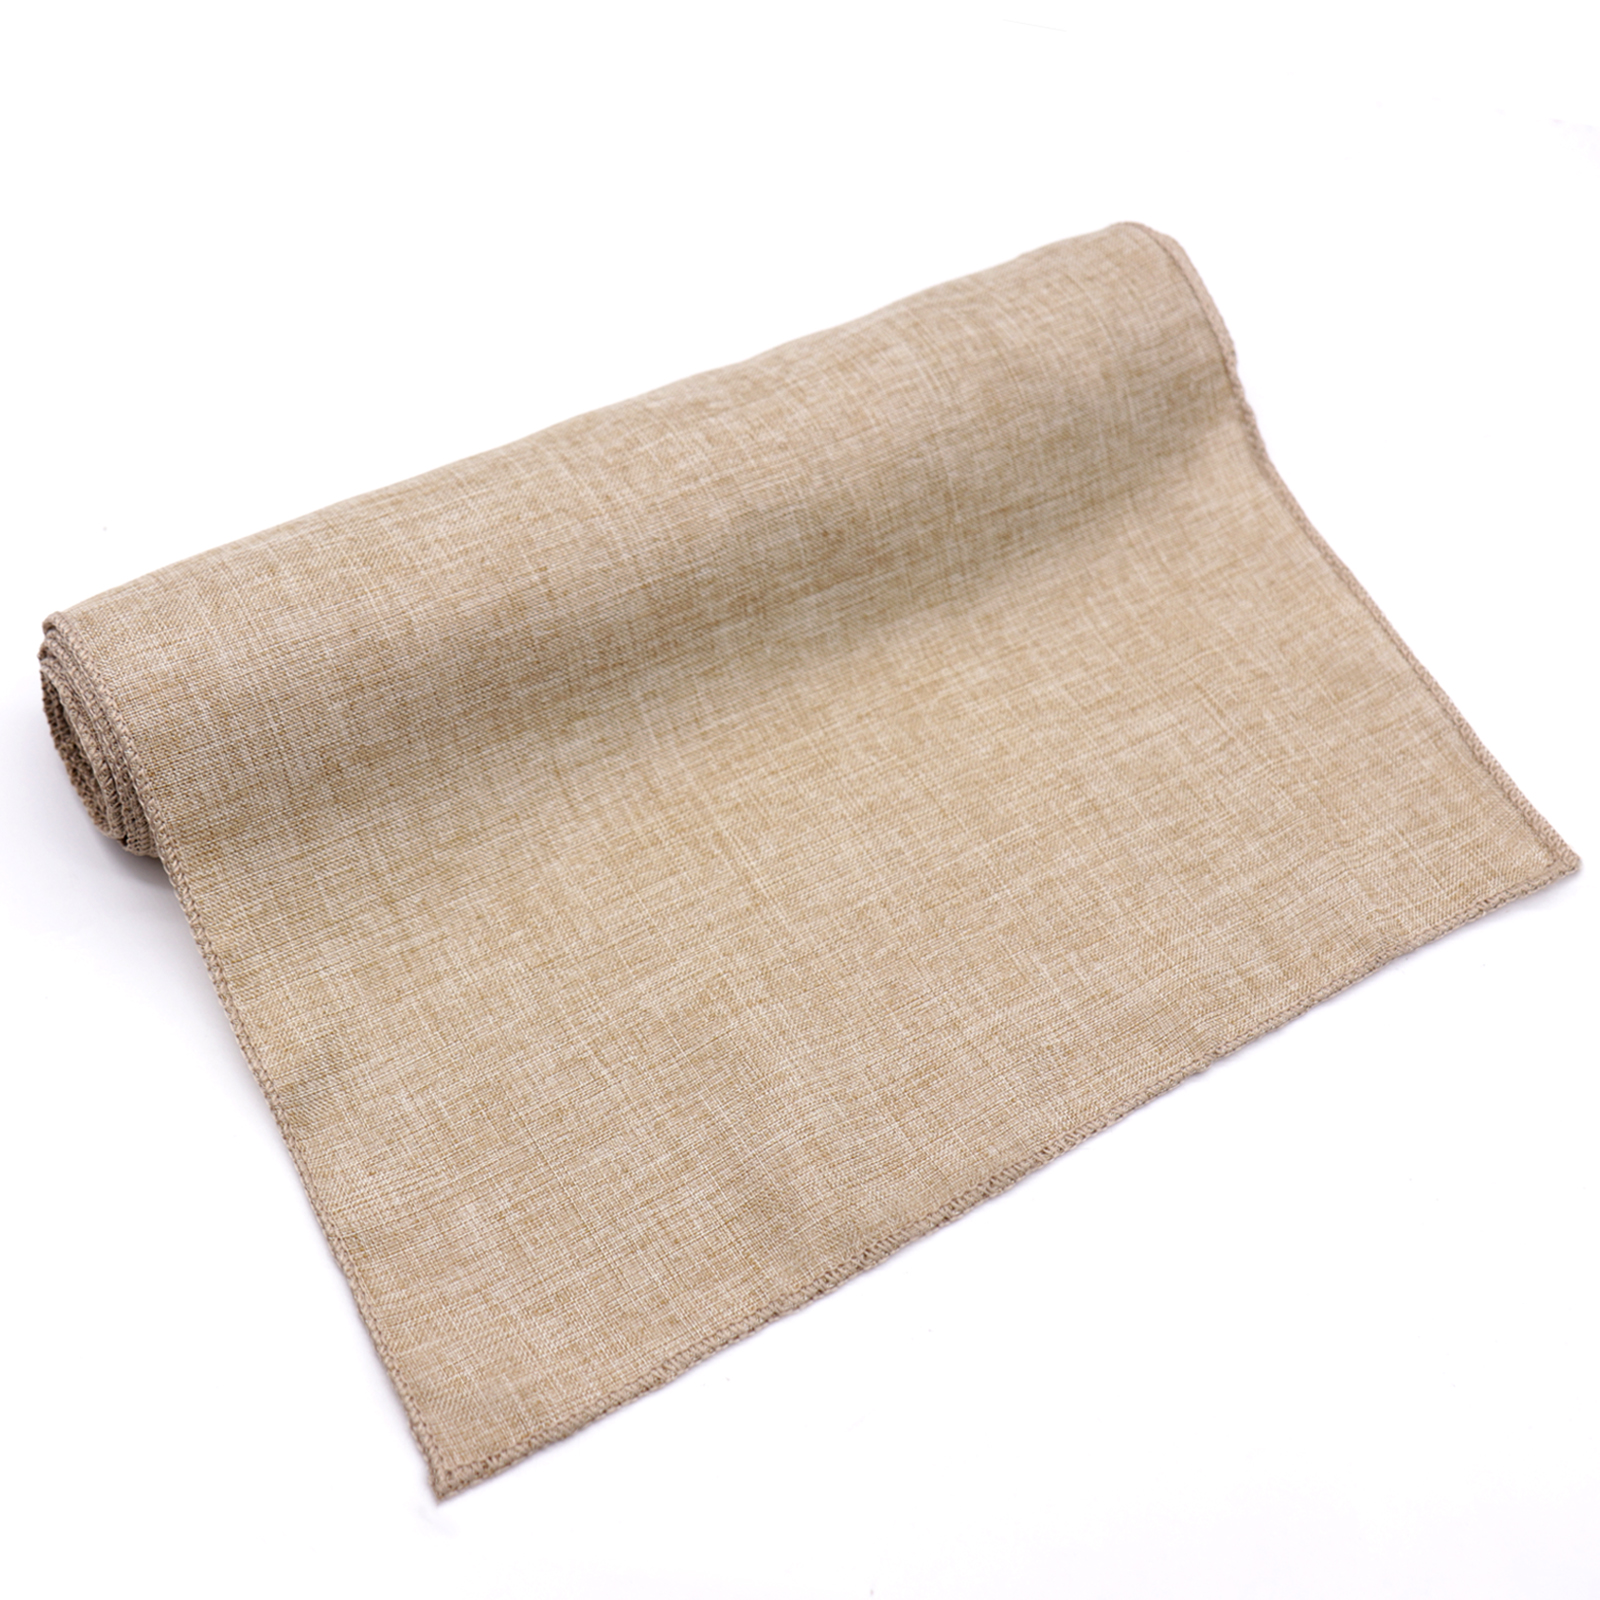 Gray Khaki Rustic Imitation Linen Table Runner Modern For Home Party Christmas Decorations